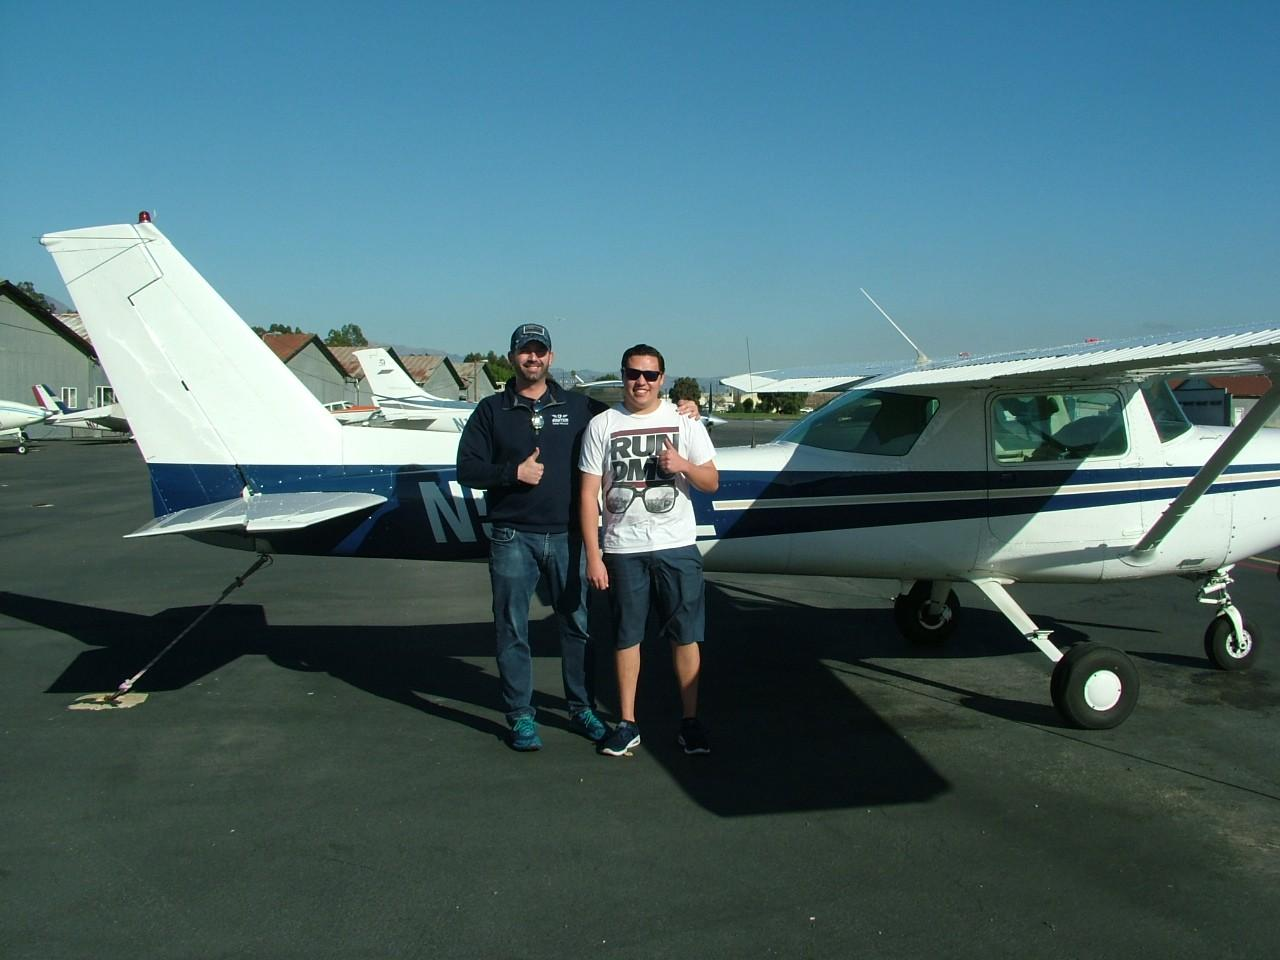 First Solo - Chandler Stuart!